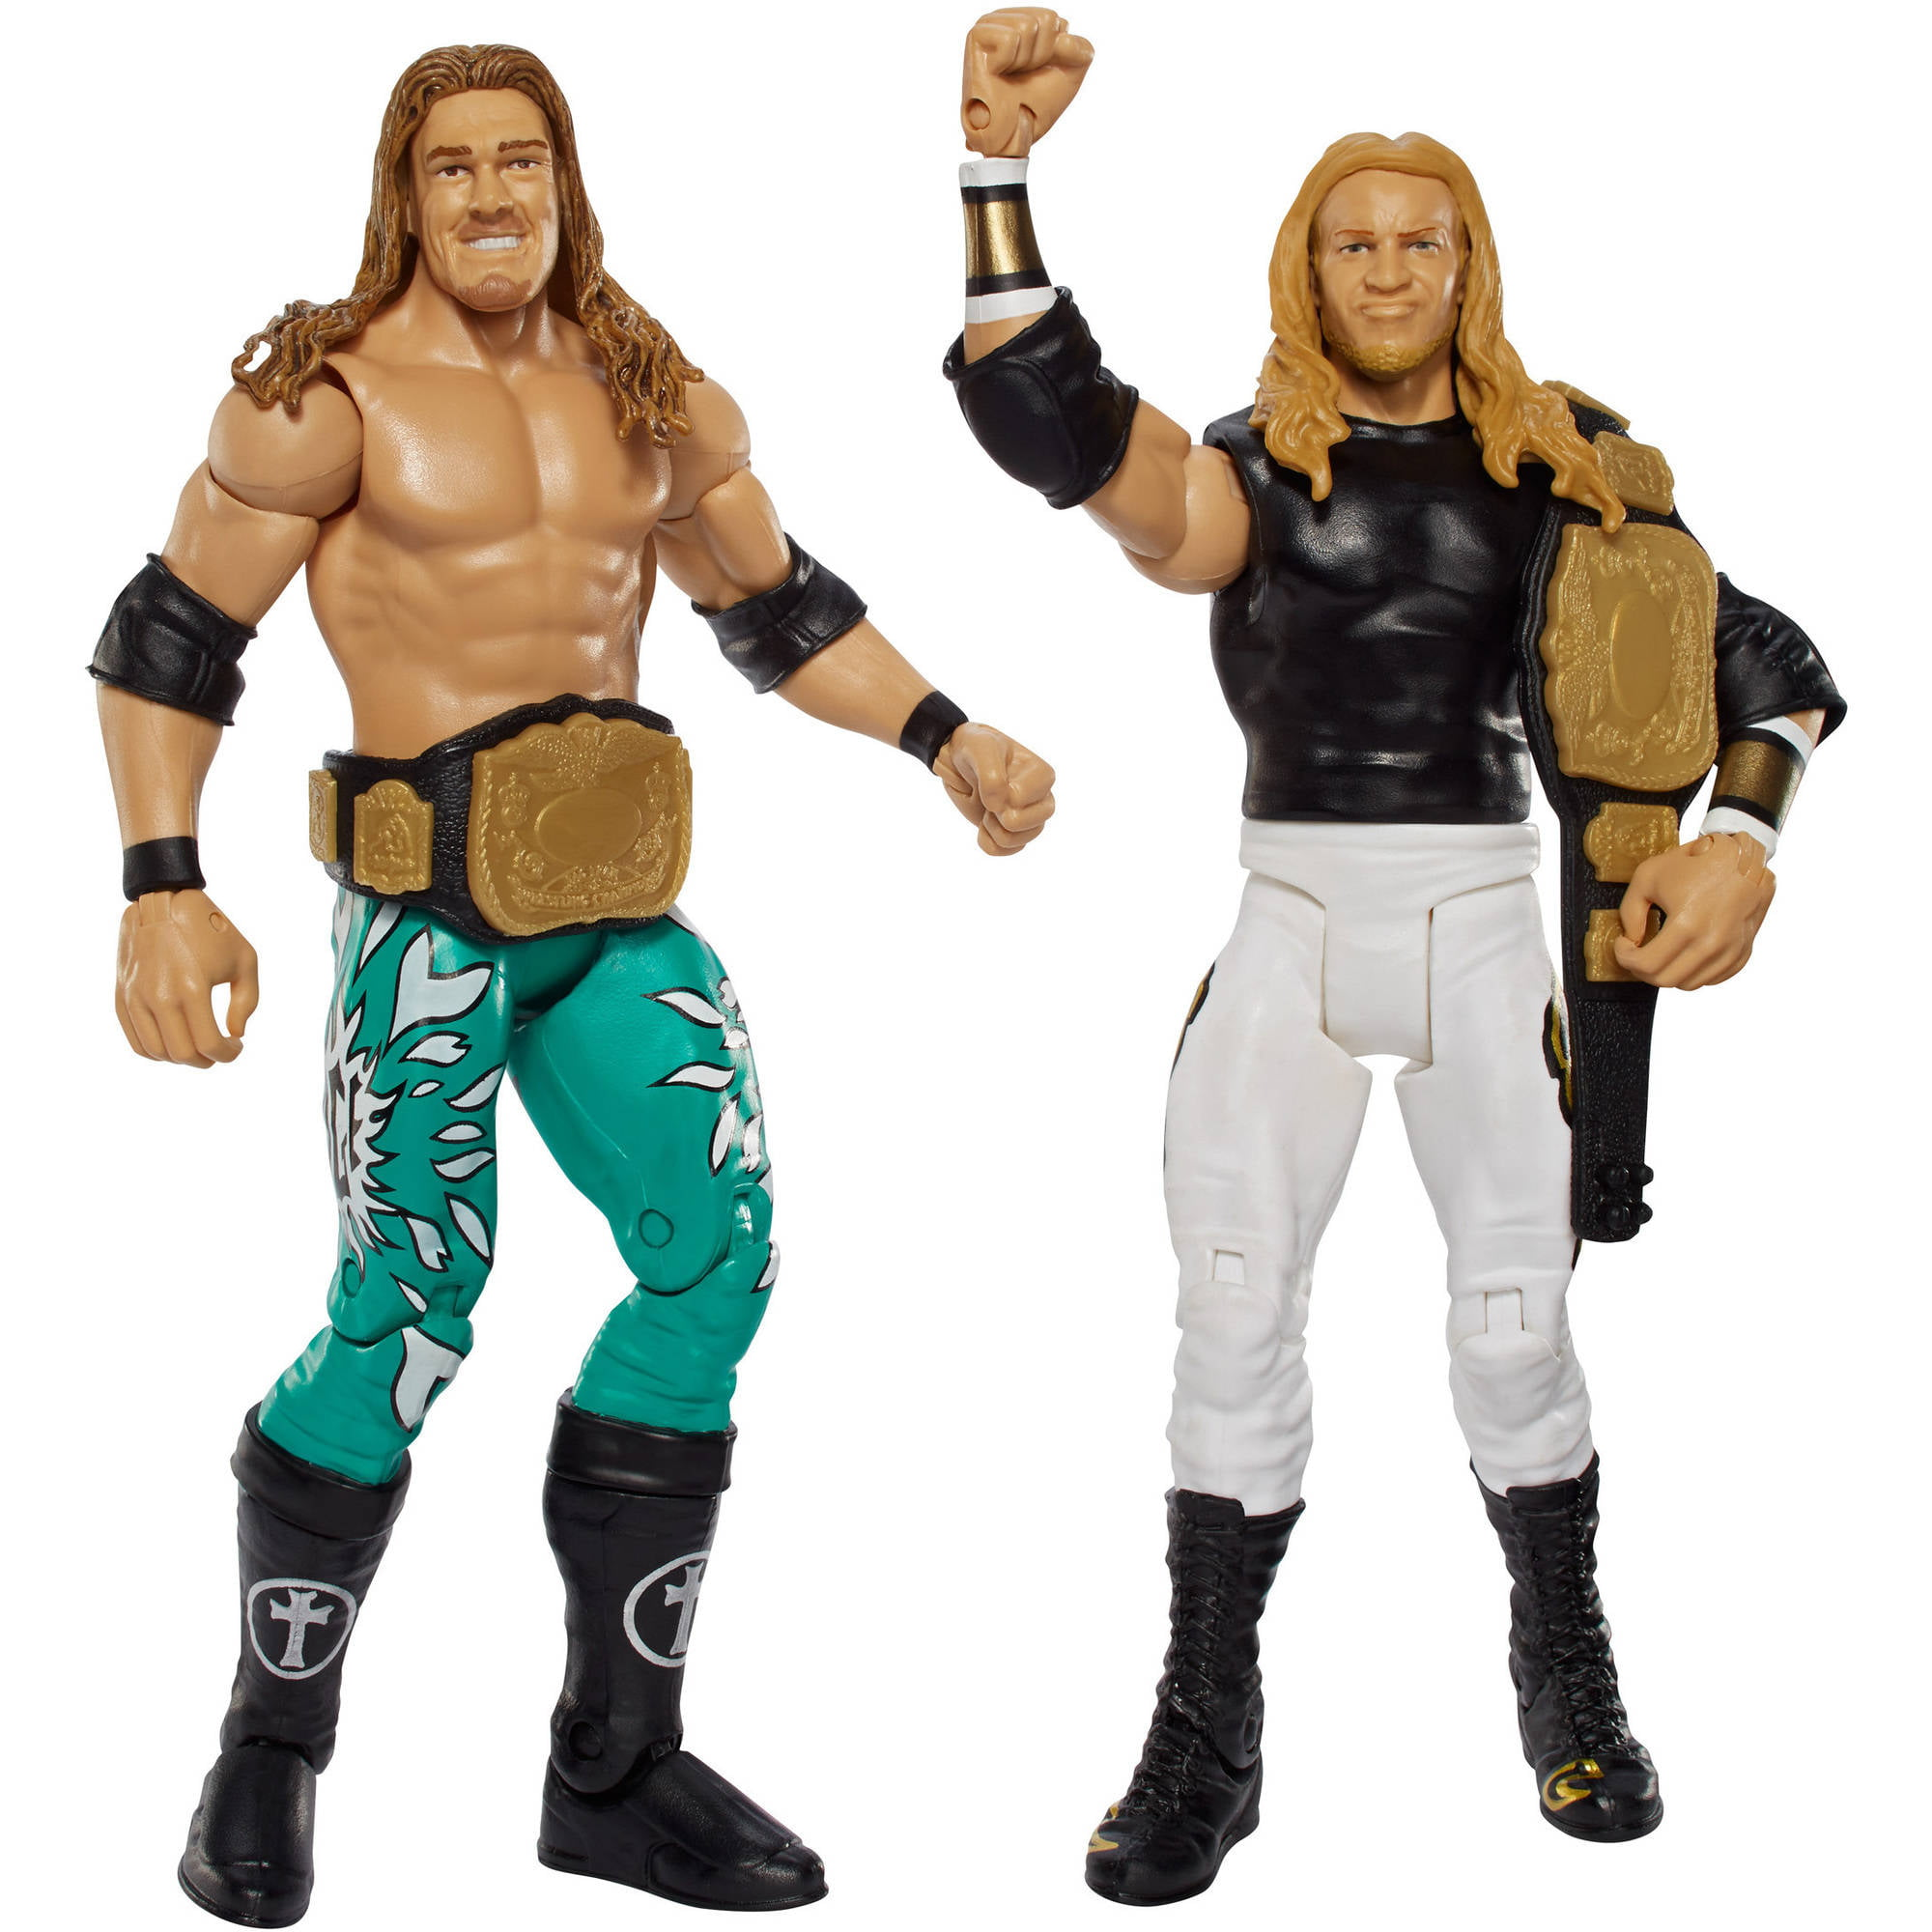 WWE Battle Pack Edge and Christian Figure, 2-Pack by Mattel